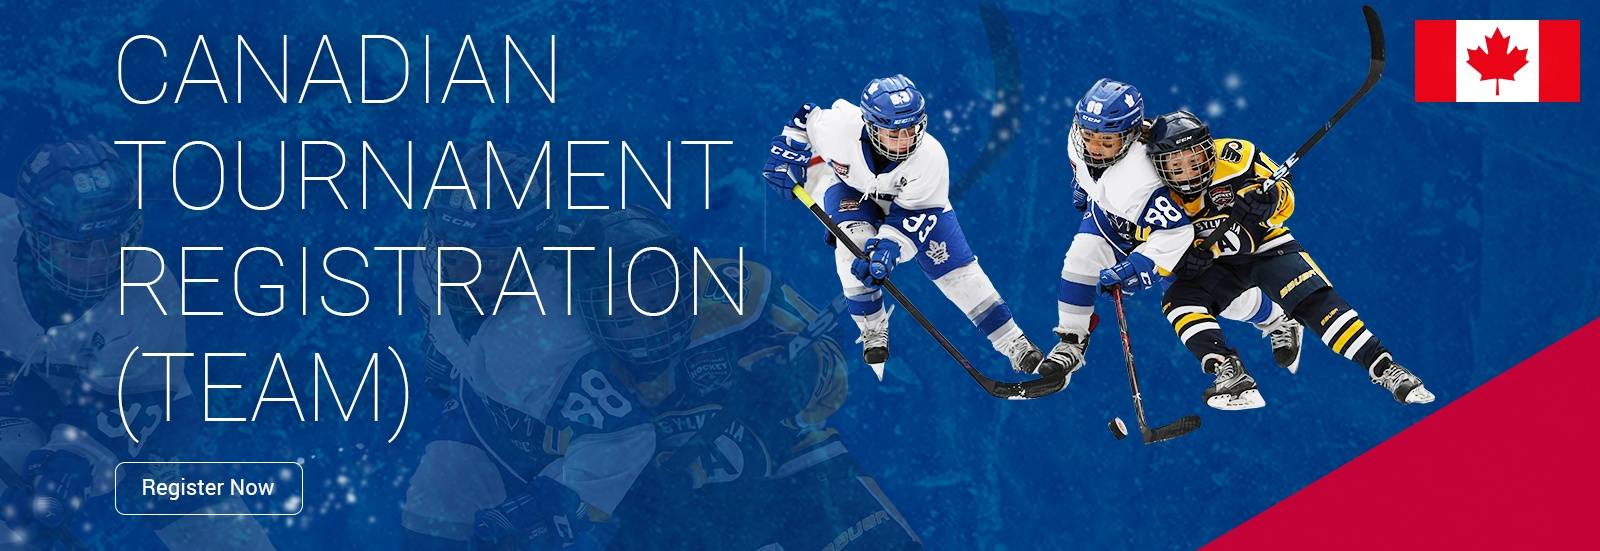 Pro Hockey Development Group